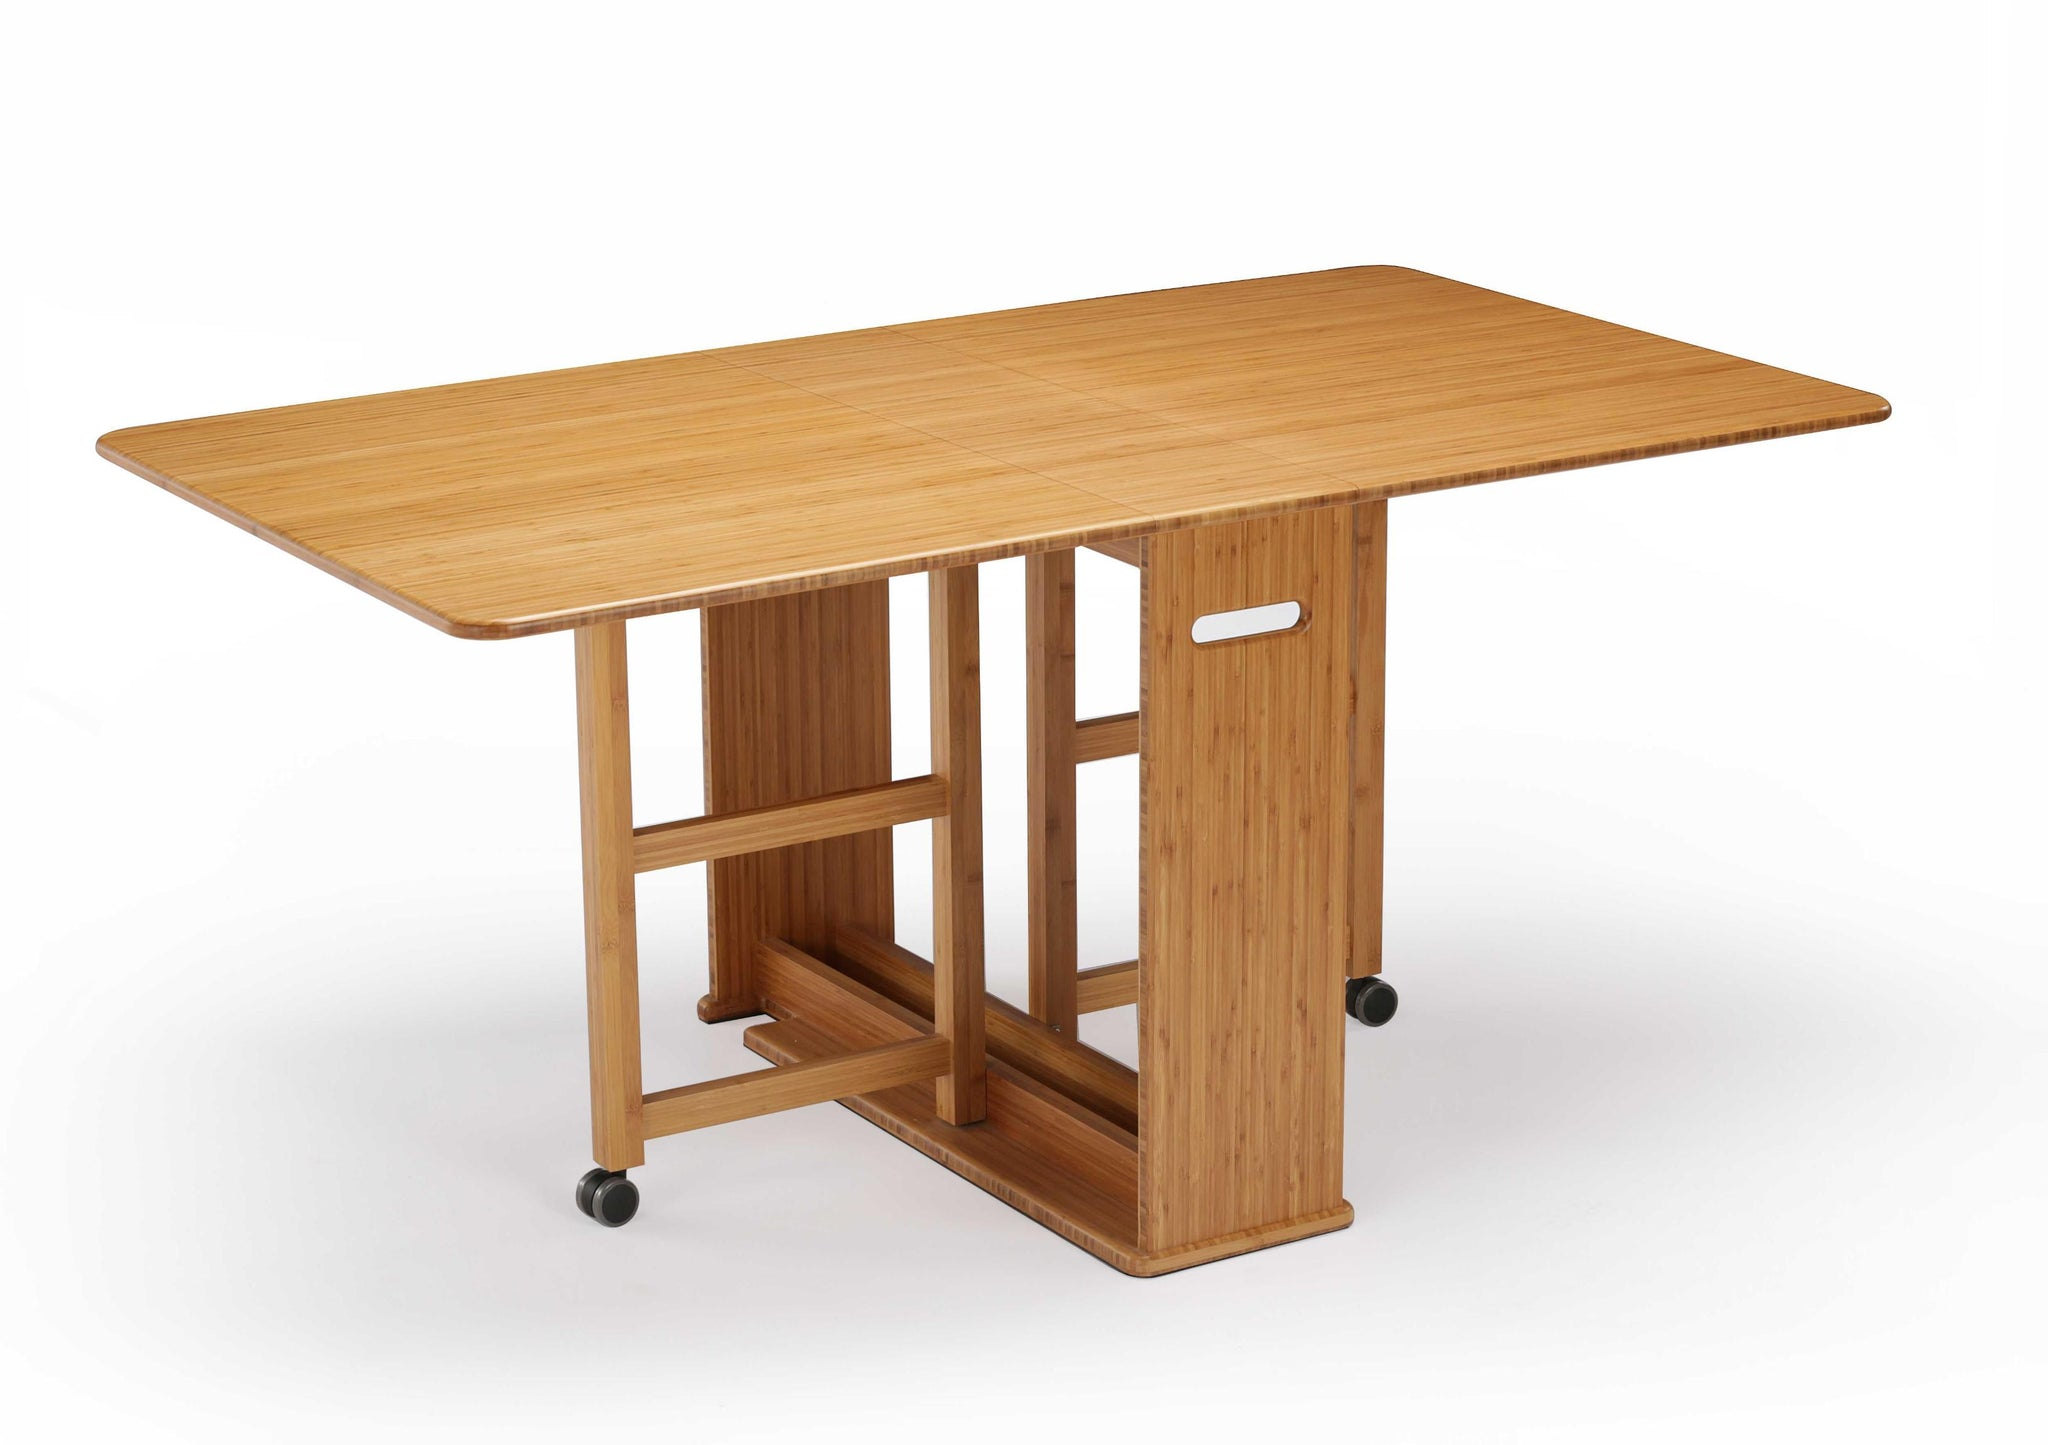 "64"" x 36"" x 29.55"" Gateleg Table, Caramelized"